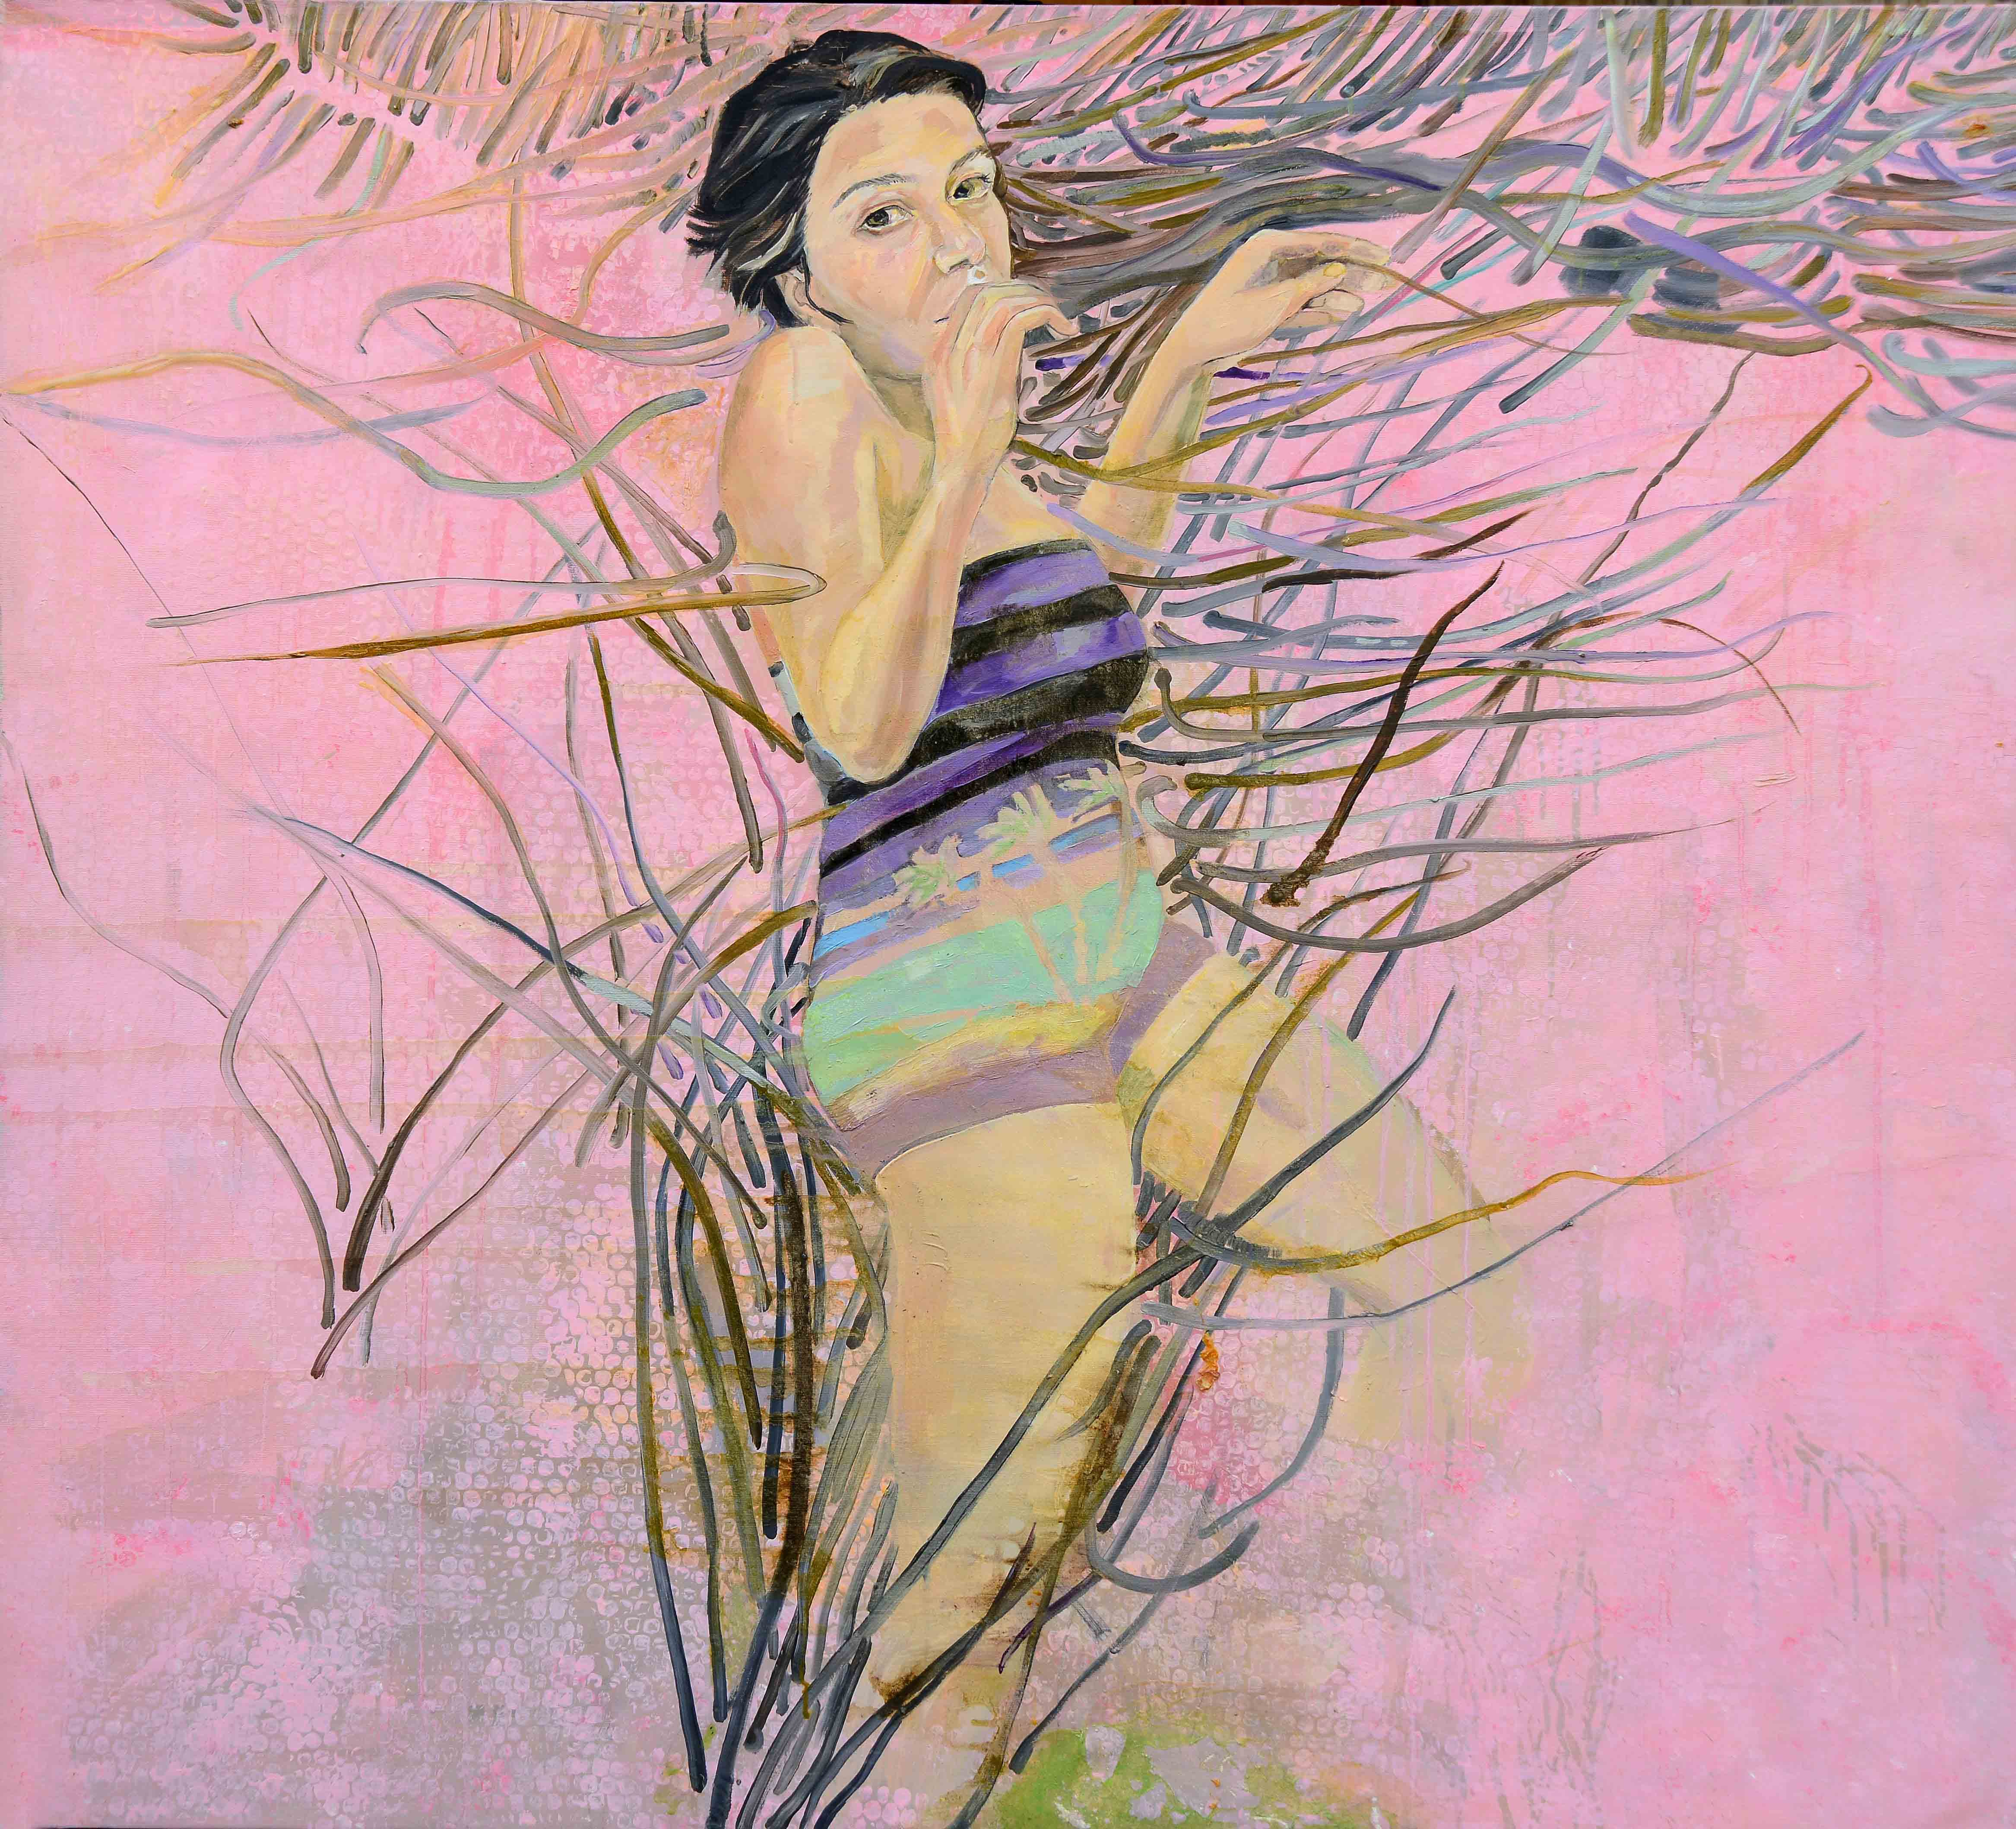 Dance with me, 2007, Tuval üzerine yağlıboya- Oil on canvas, 128×116 cm